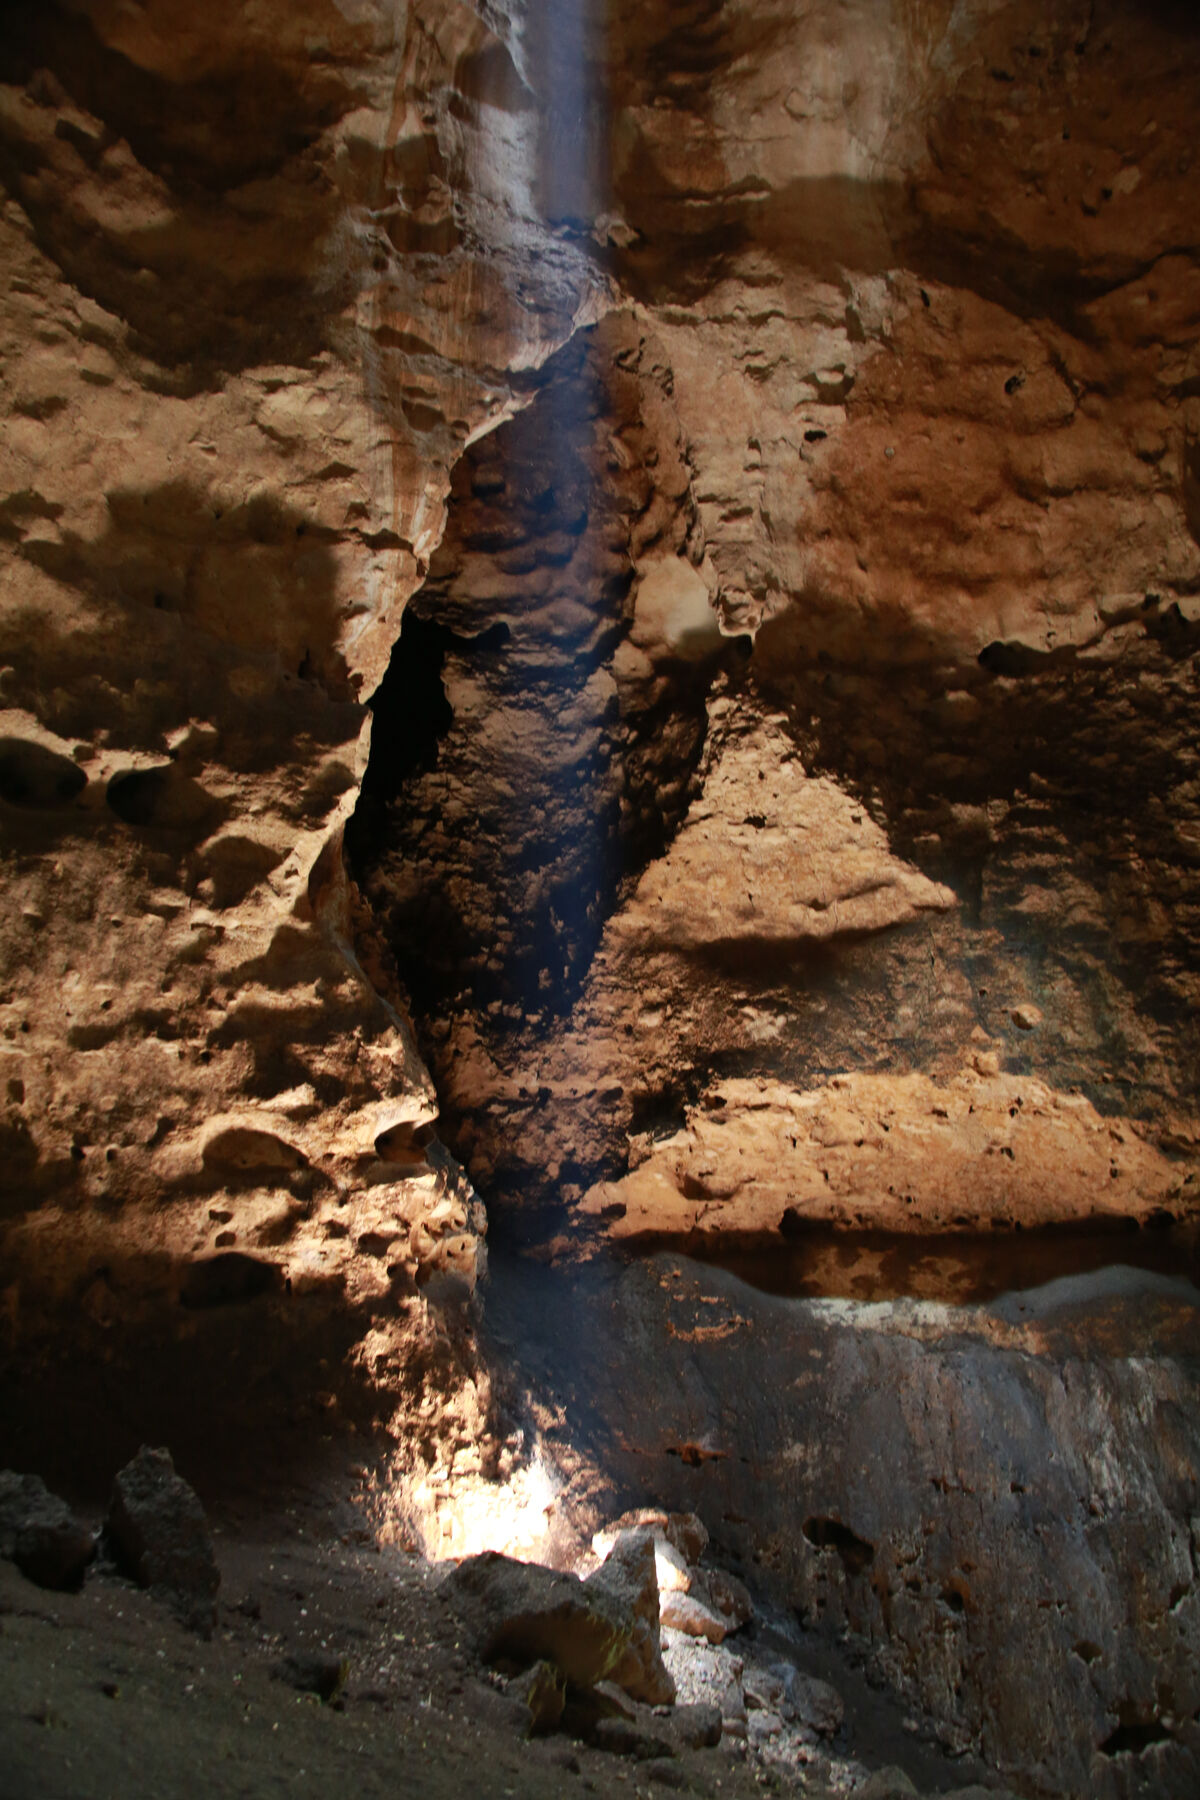 Allora & Calzadilla, Puerto Rican Light (Cueva Vientos), 2015. Guayanilla-Peñuelas, Puerto Rico. © Allora & Calzadilla. Photo by Myritza Castillo. Courtesy of Dia.